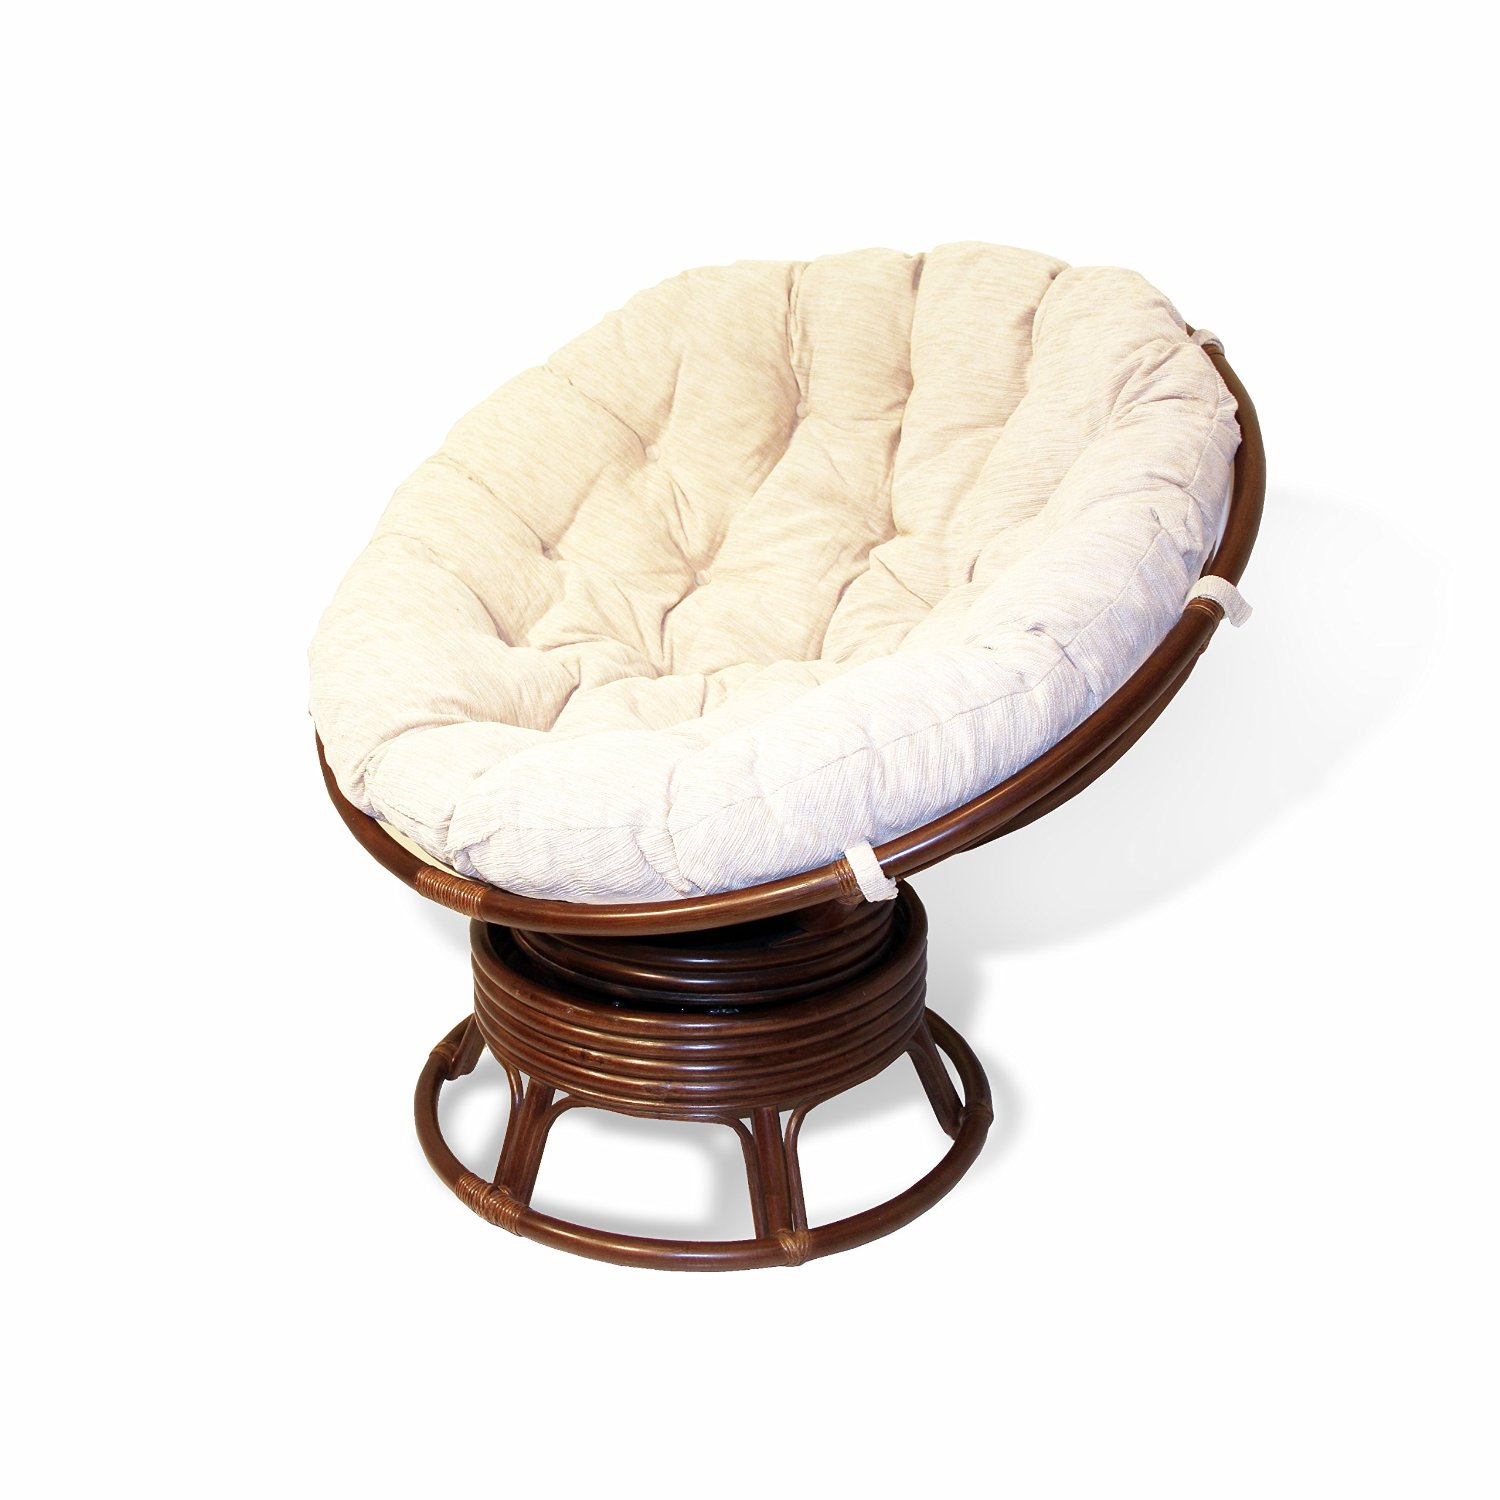 Handmade Rattan Wicker Swivel Rocking Round Papasan Chair with Thick Cushion Dark Brown